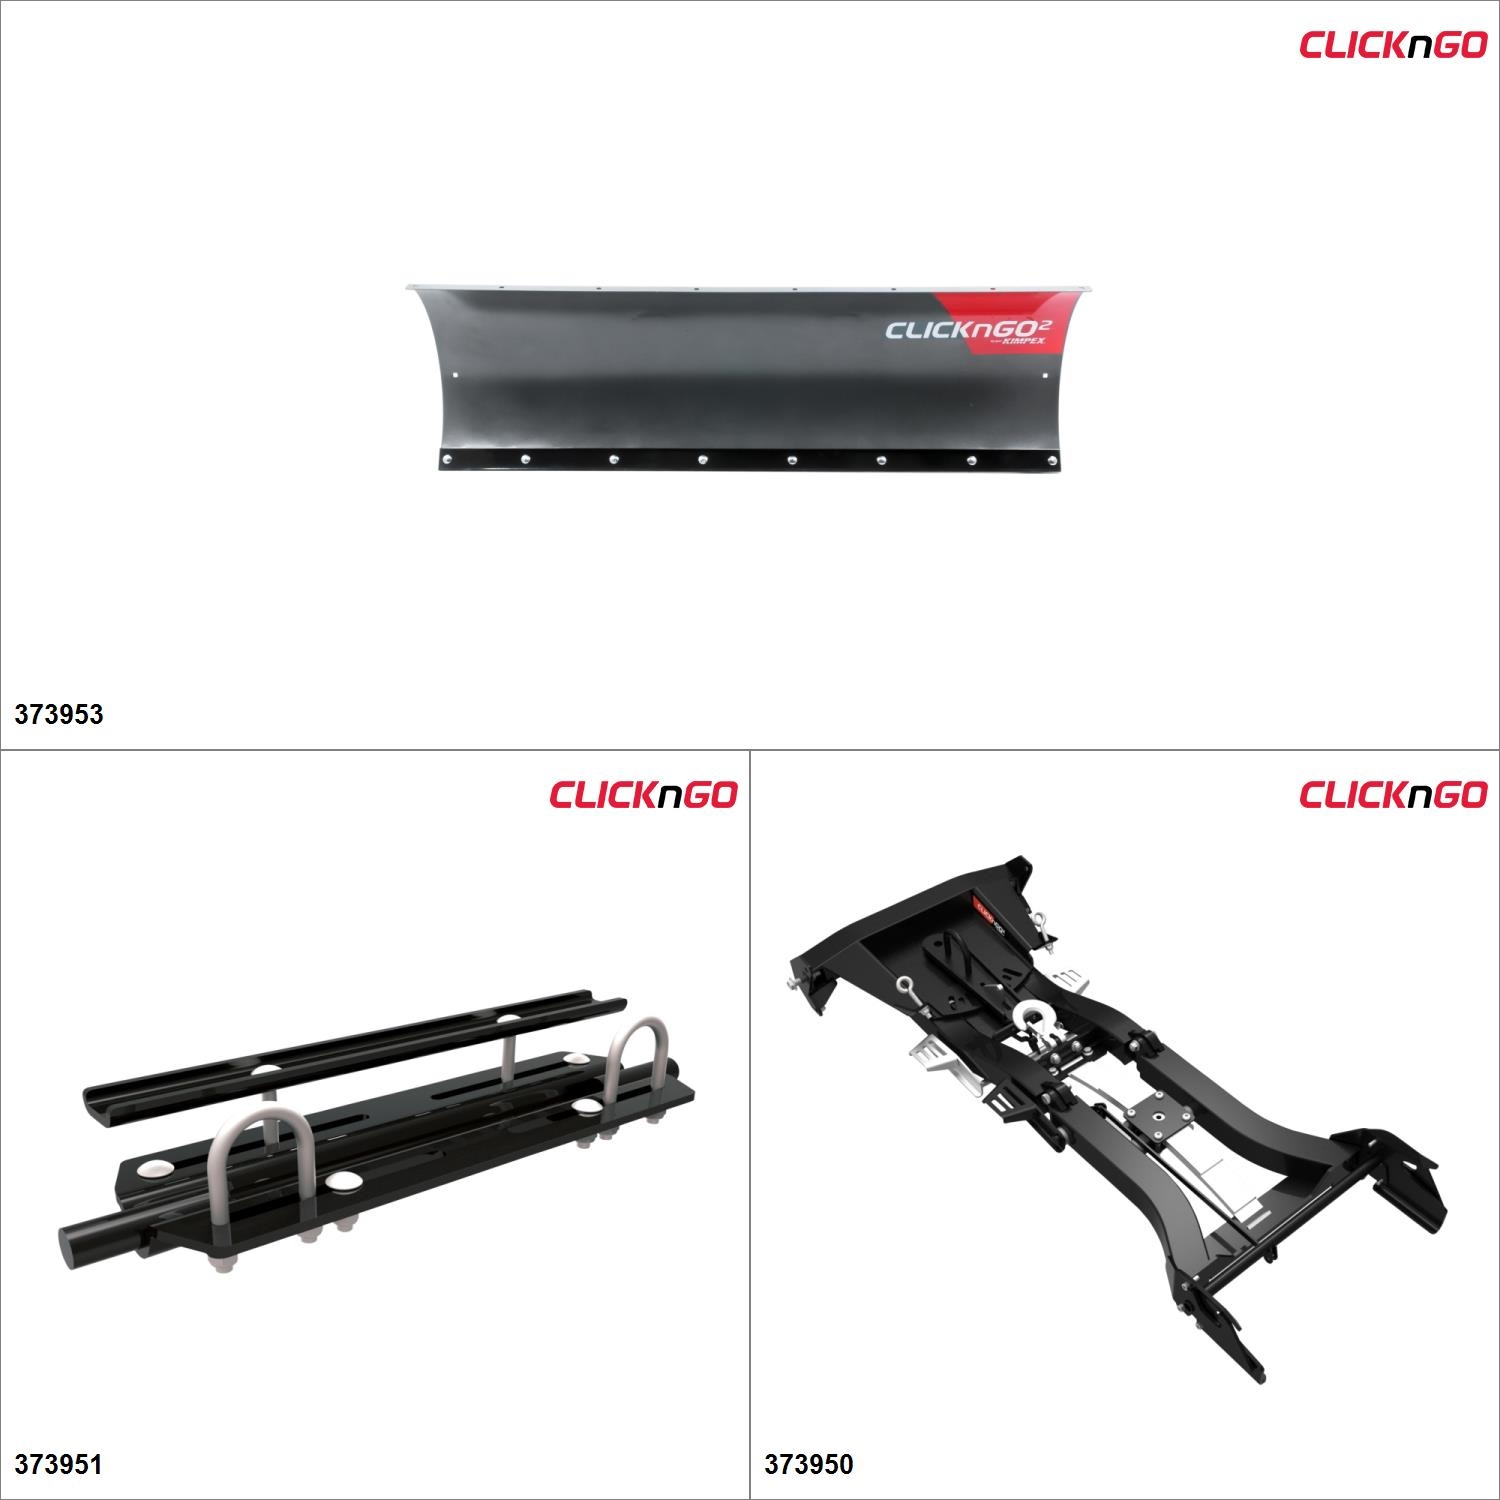 ClickNGo GEN 2 ATV Plow kit 60'', CF-Moto CFORCE 800 2015, 17 Black   Titanium Gray... by CLICK N GO